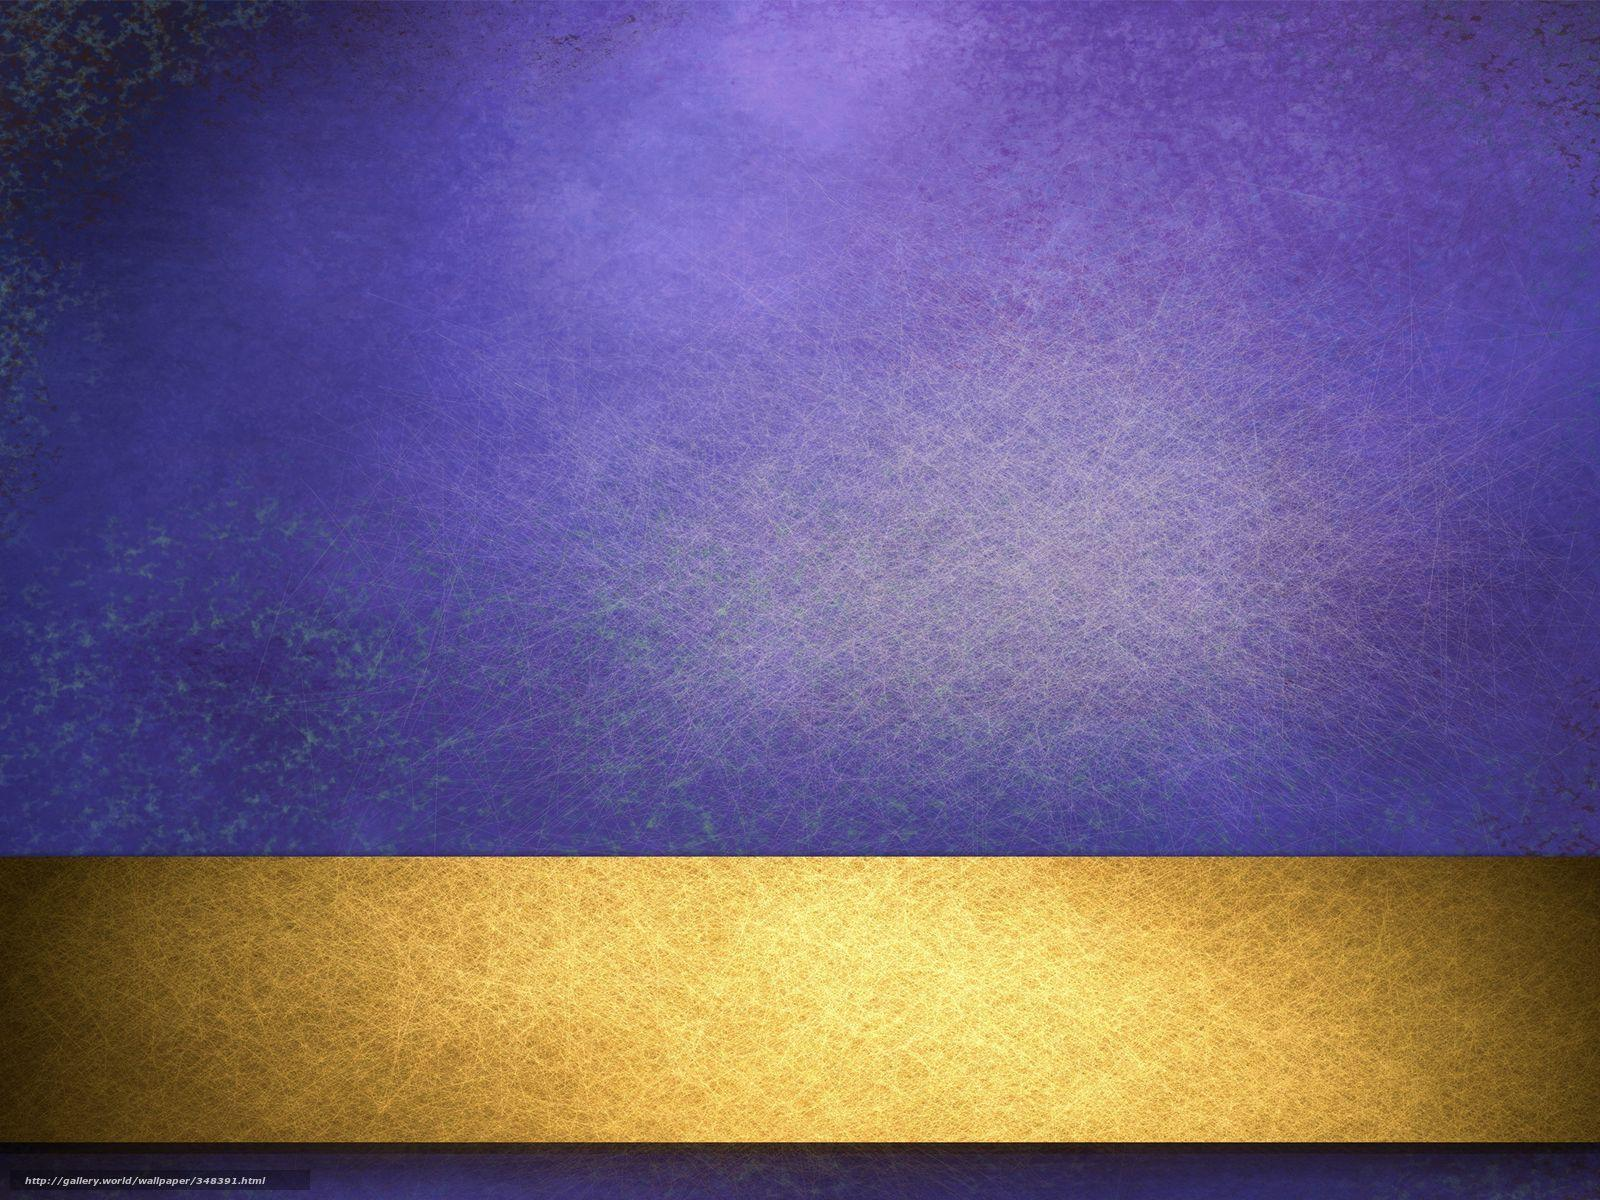 Purple Gold Wallpaper Wallpapersafari